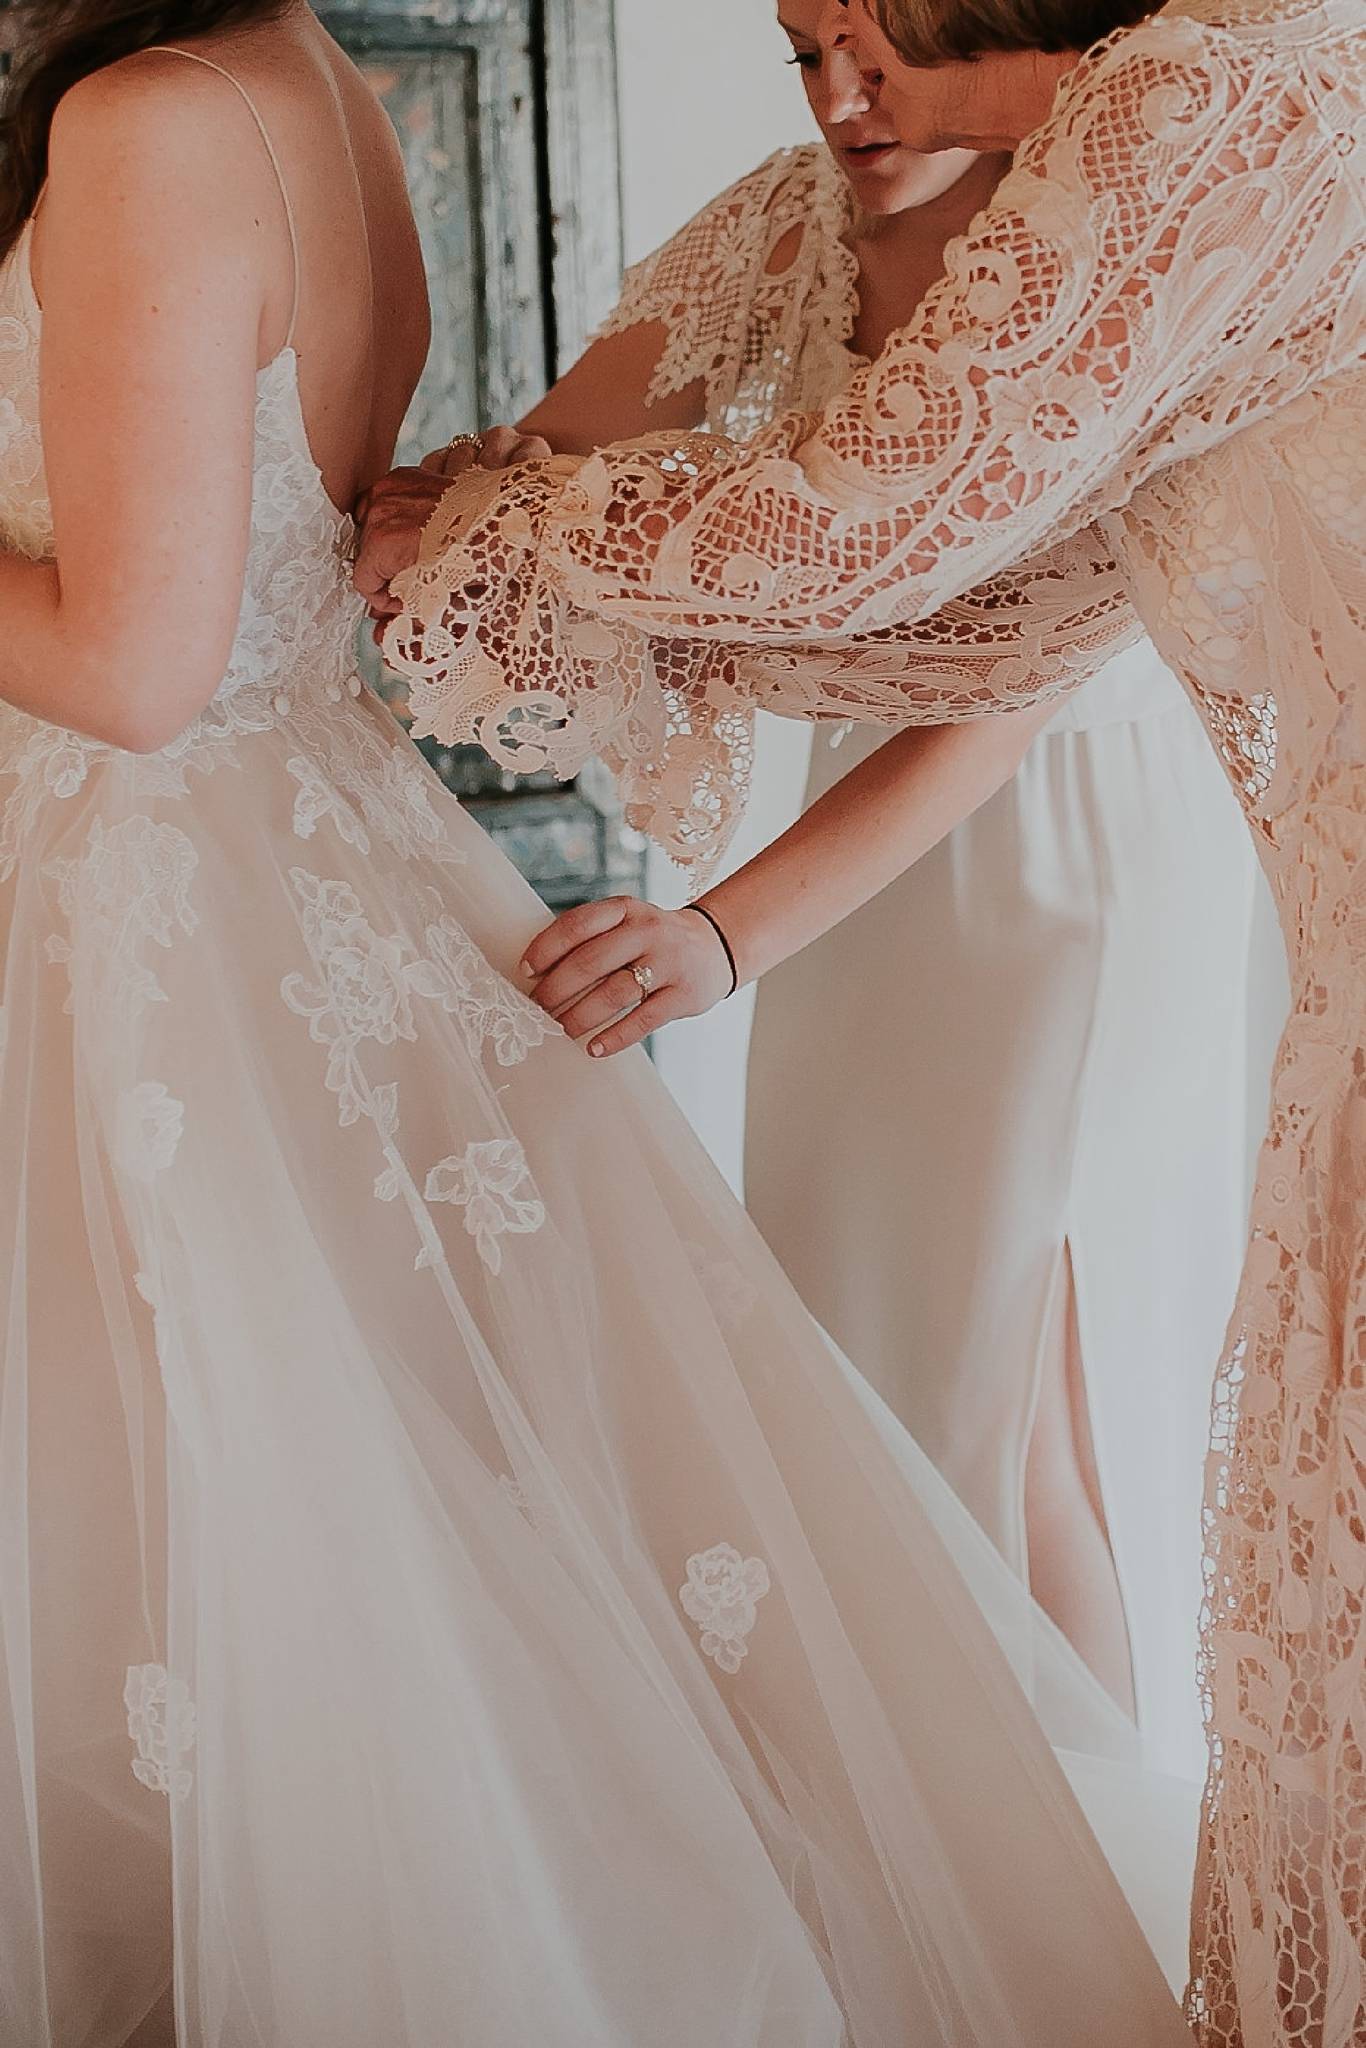 Alicia+lucia+photography+-+albuquerque+wedding+photographer+-+santa+fe+wedding+photography+-+new+mexico+wedding+photographer+-+new+mexico+wedding+-+wedding+gowns+-+bridal+gowns+-+a+line+wedding+gown_0062.jpg